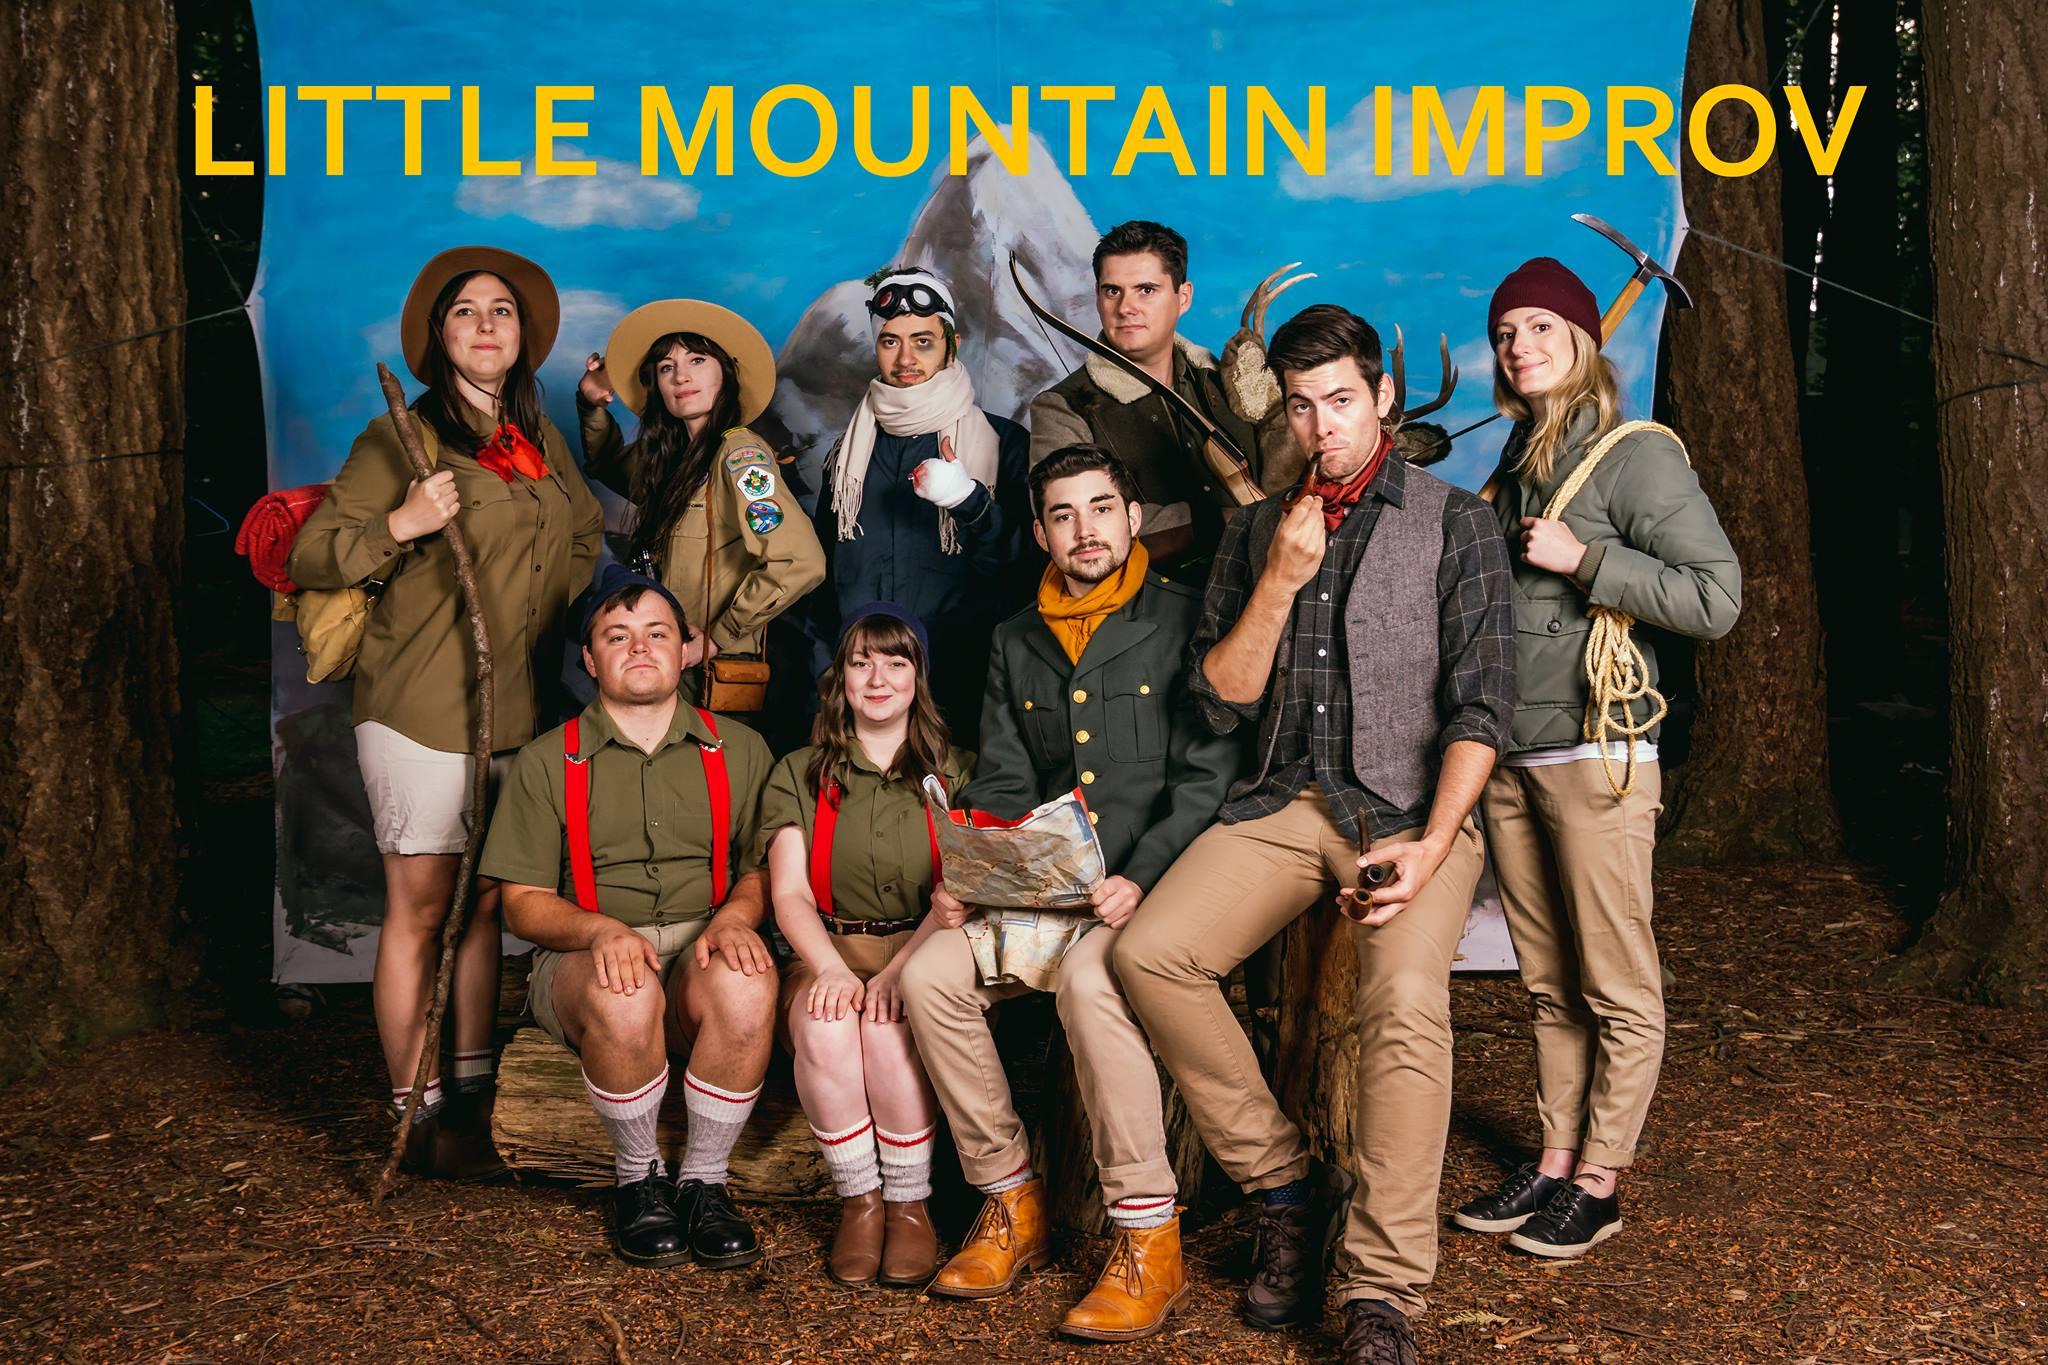 Little Mountain Improv